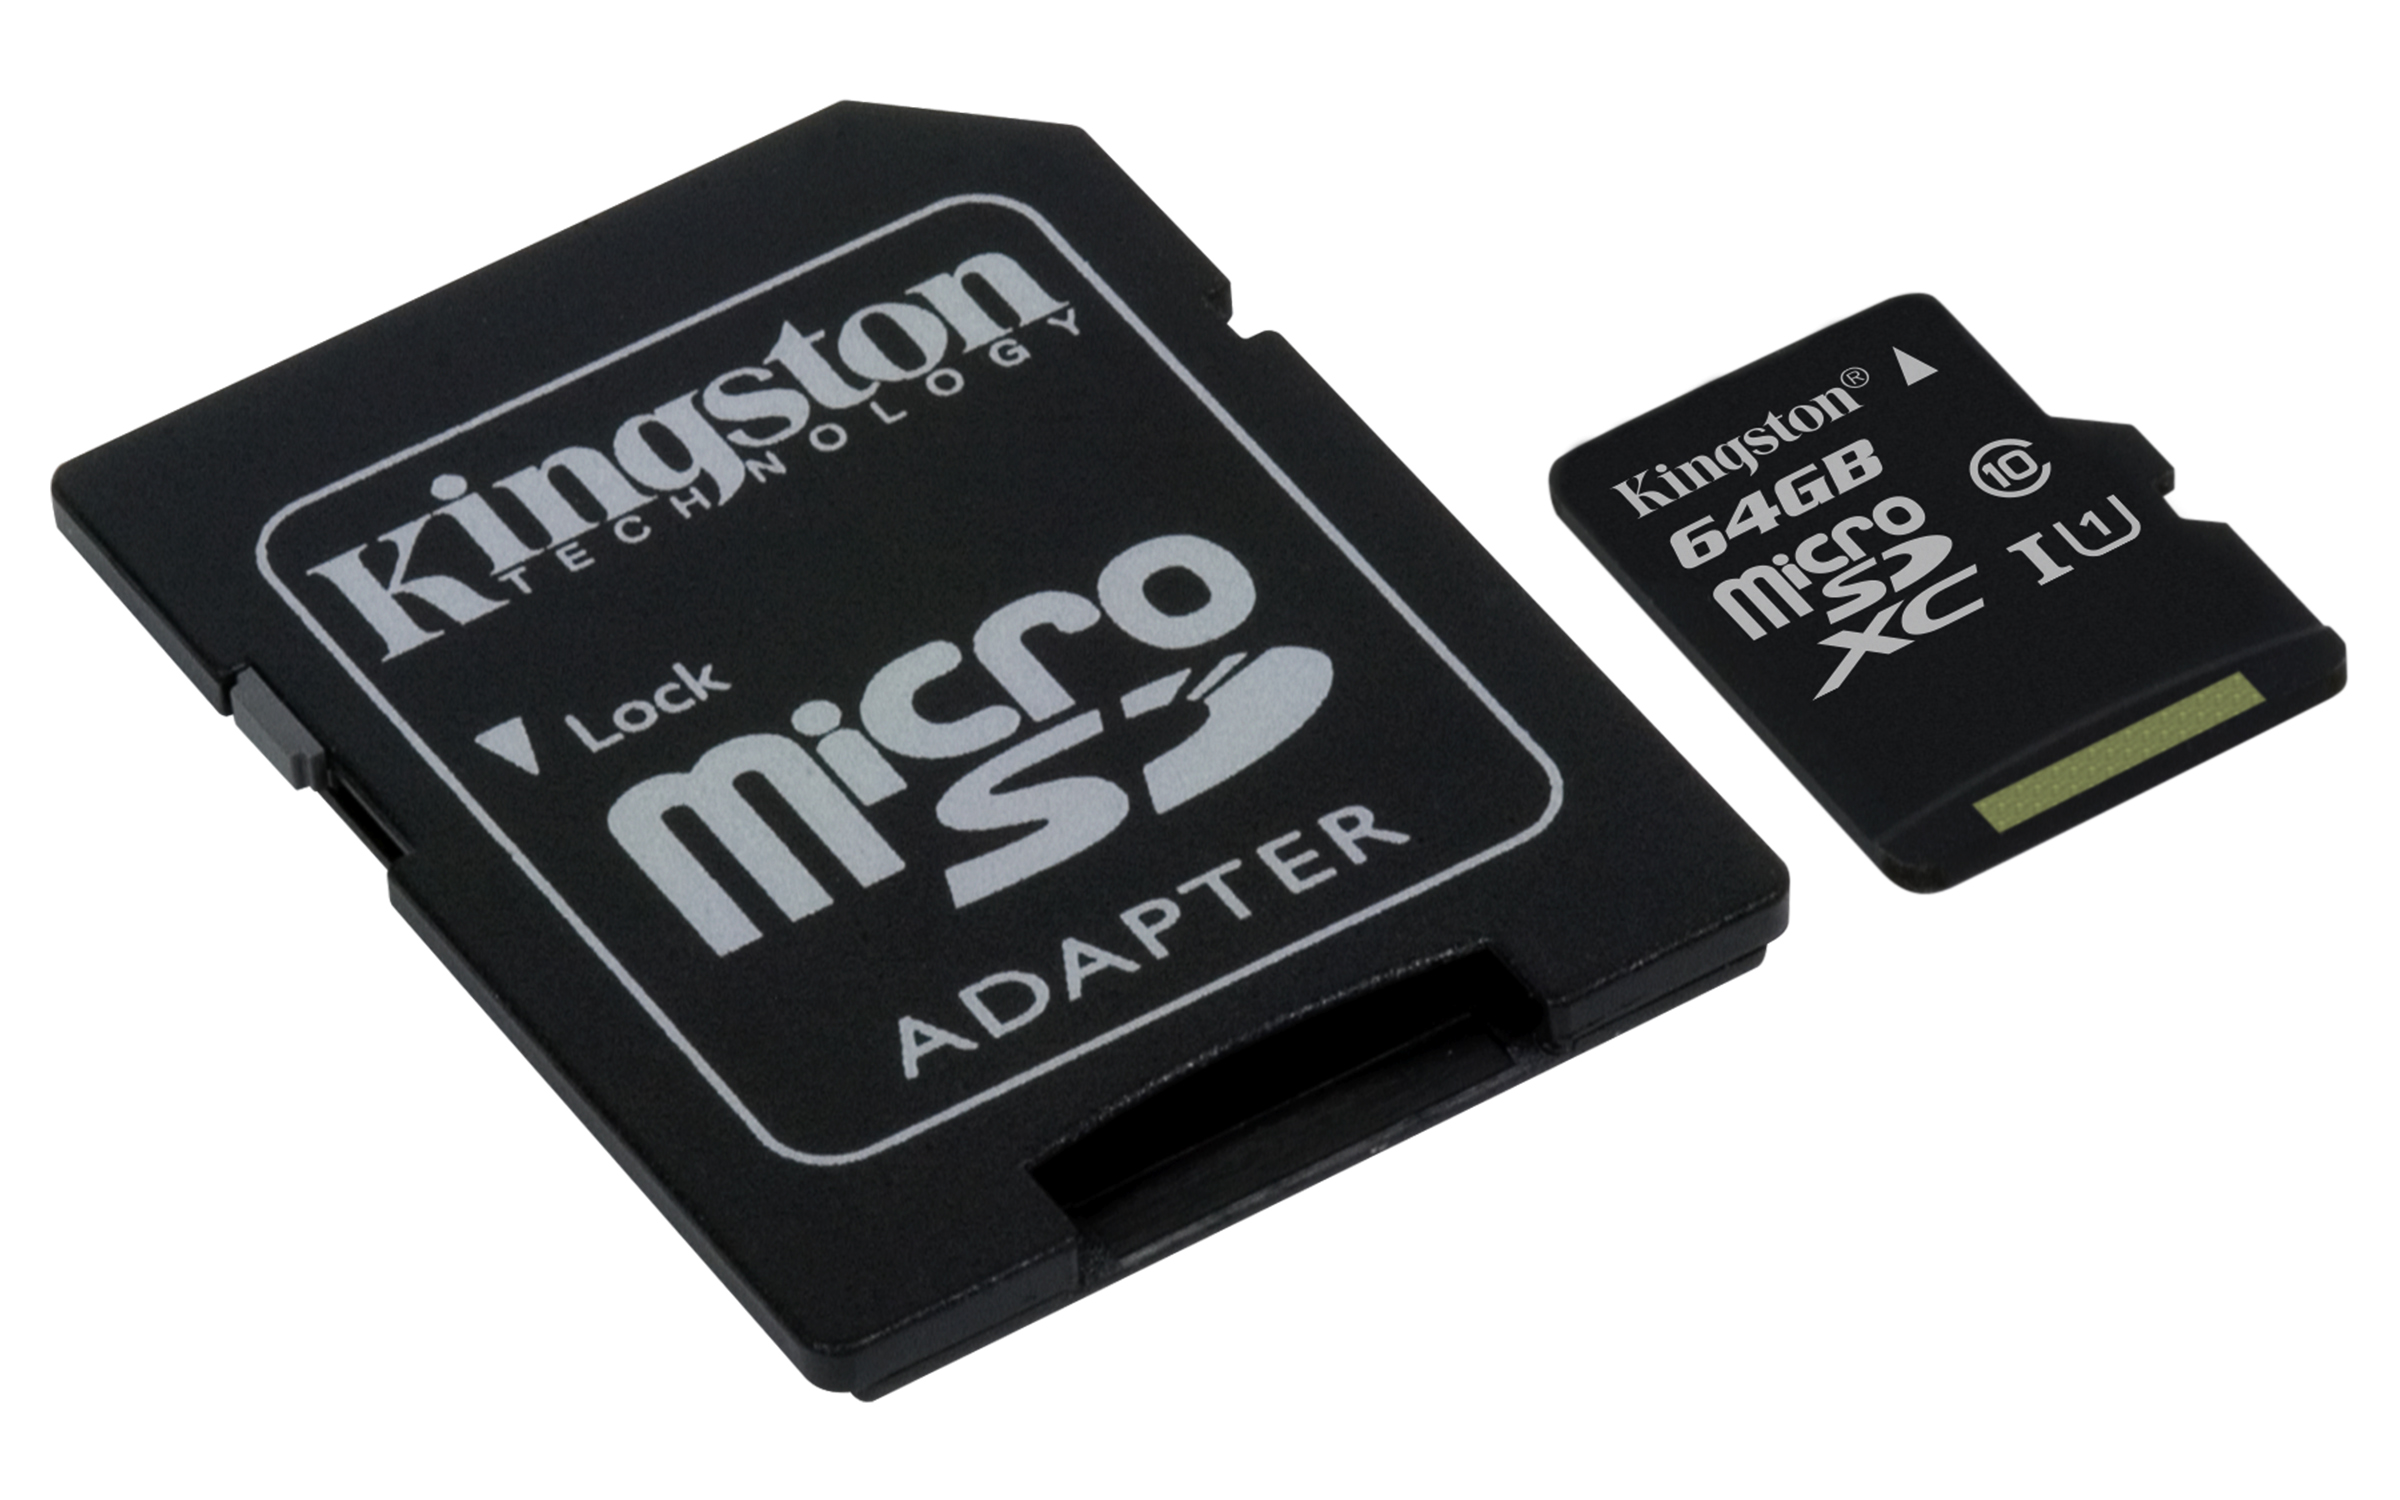 KINGSTON 64GB microSDHC Memory Card 45MB/10MBs- UHS-I class 10 Gen 2